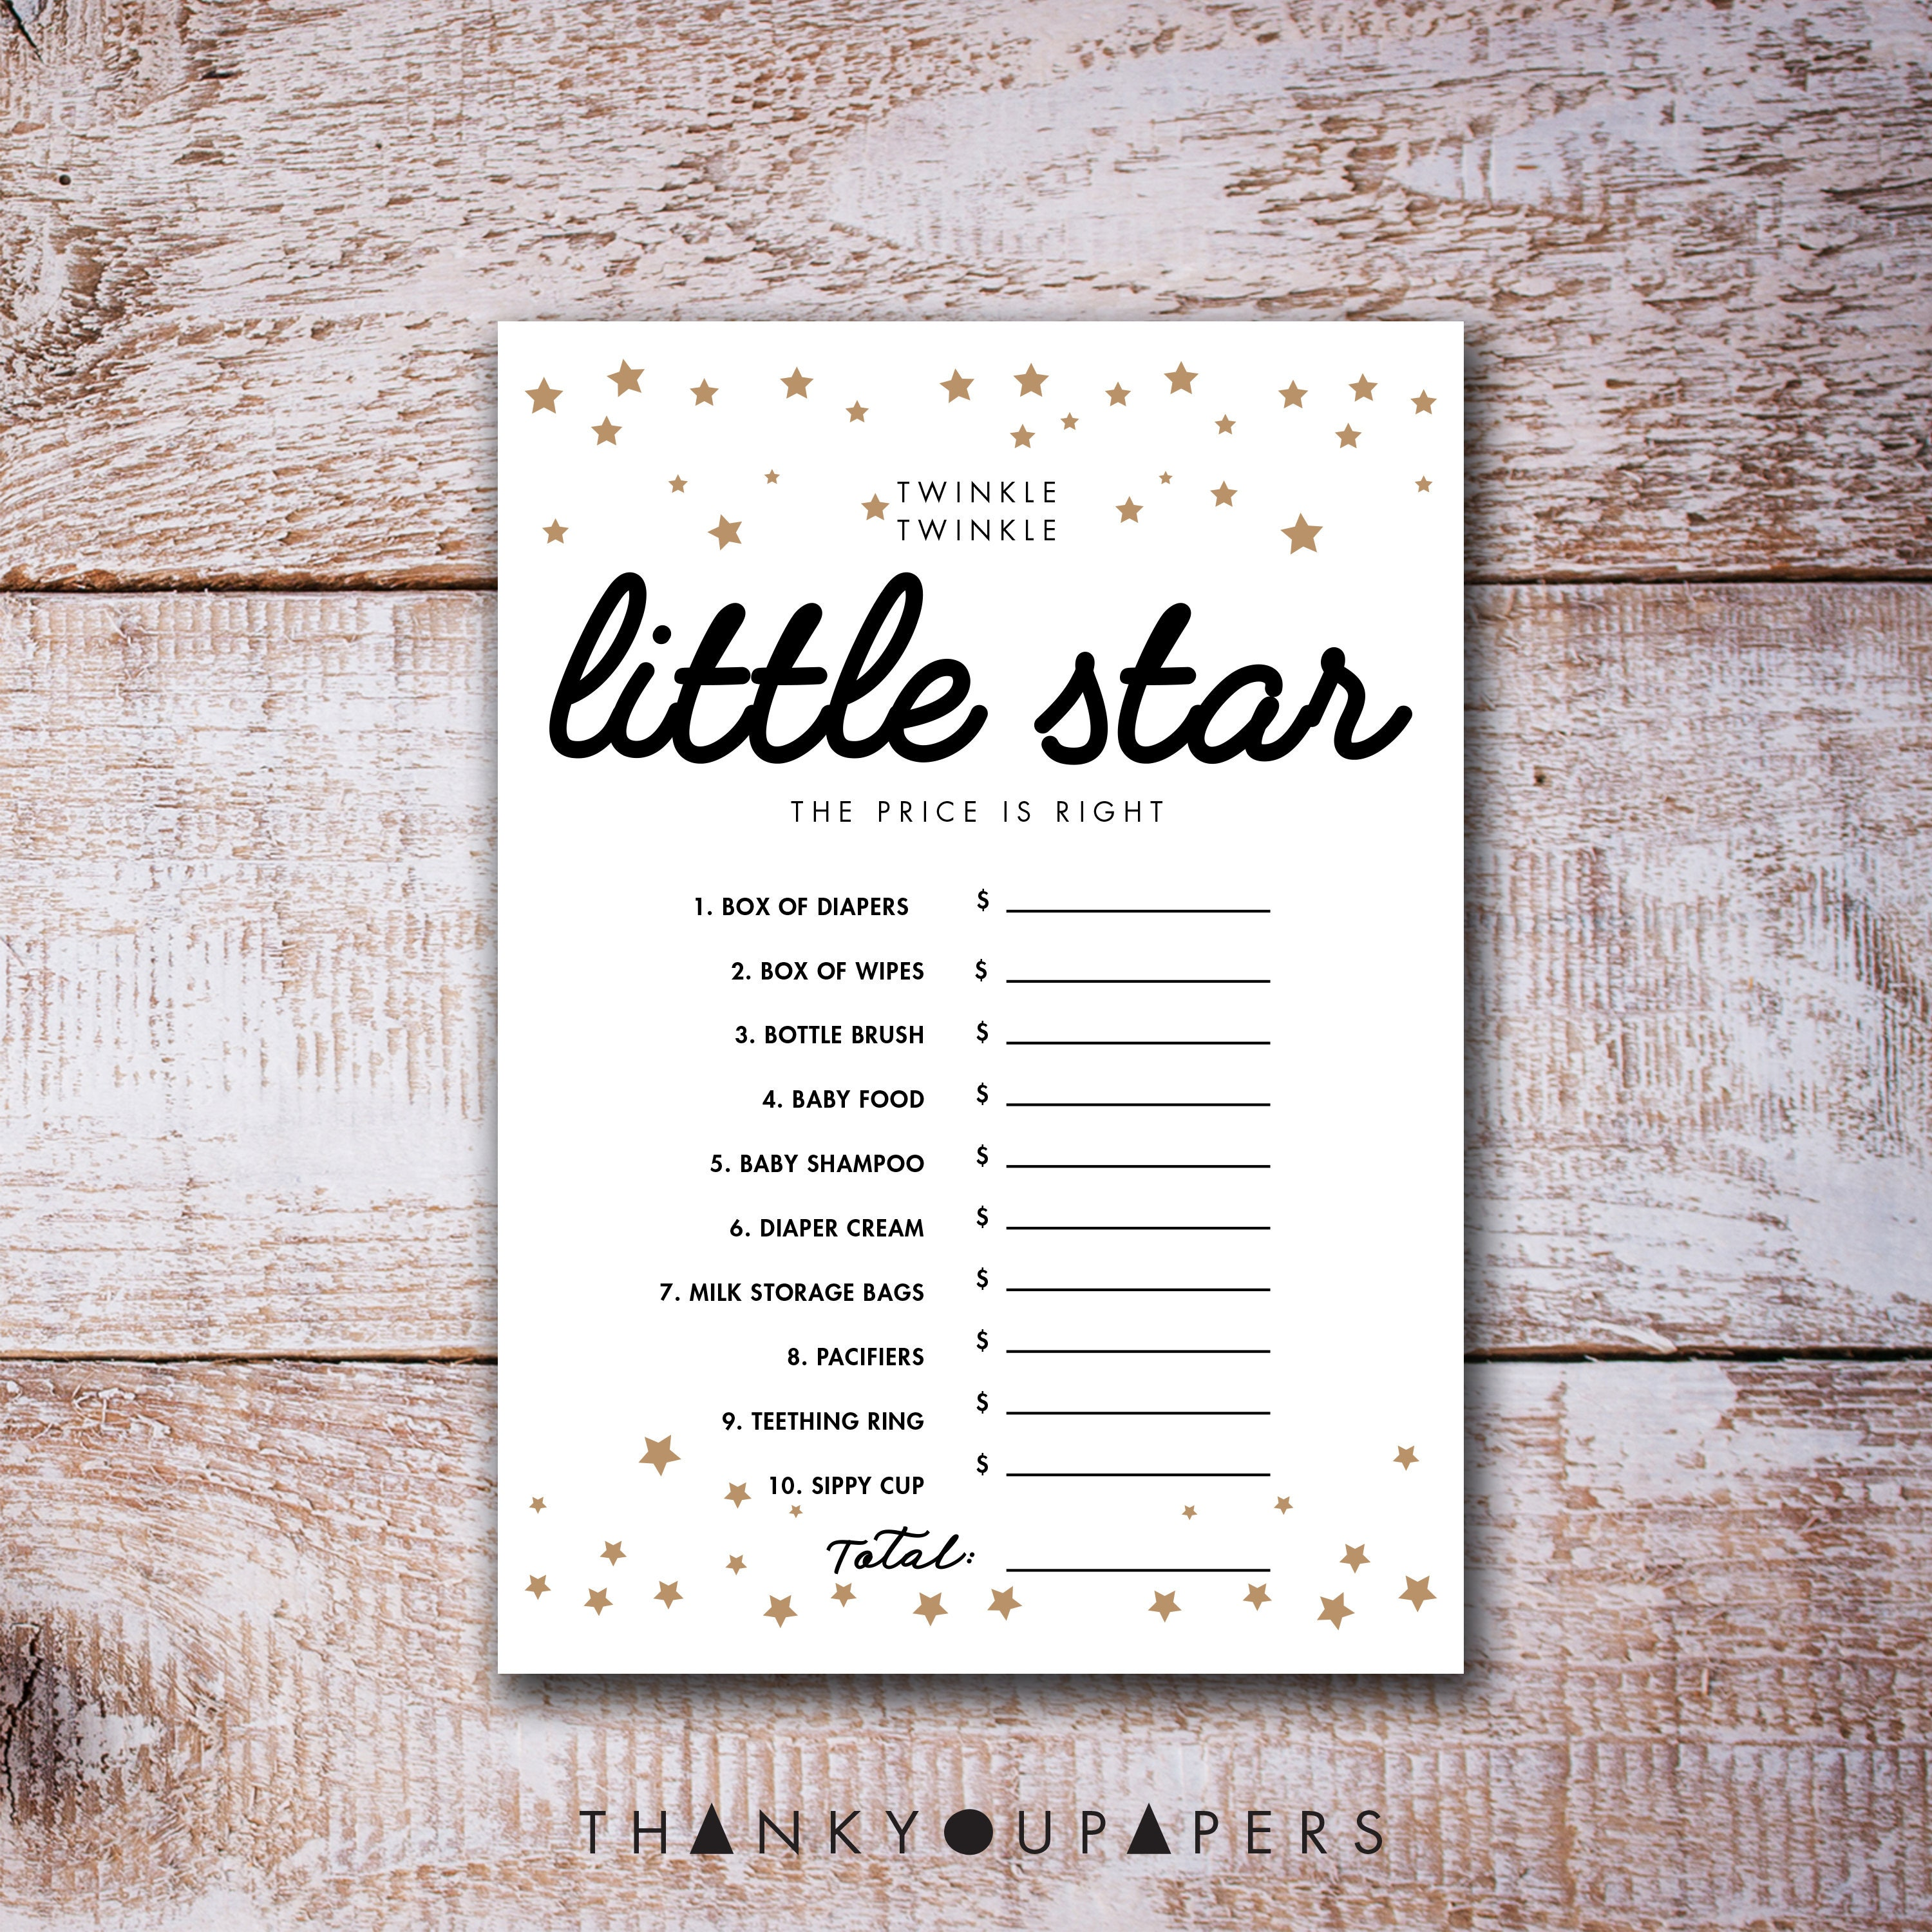 Twinkle Twinkle Little Star Baby Shower Games the price is